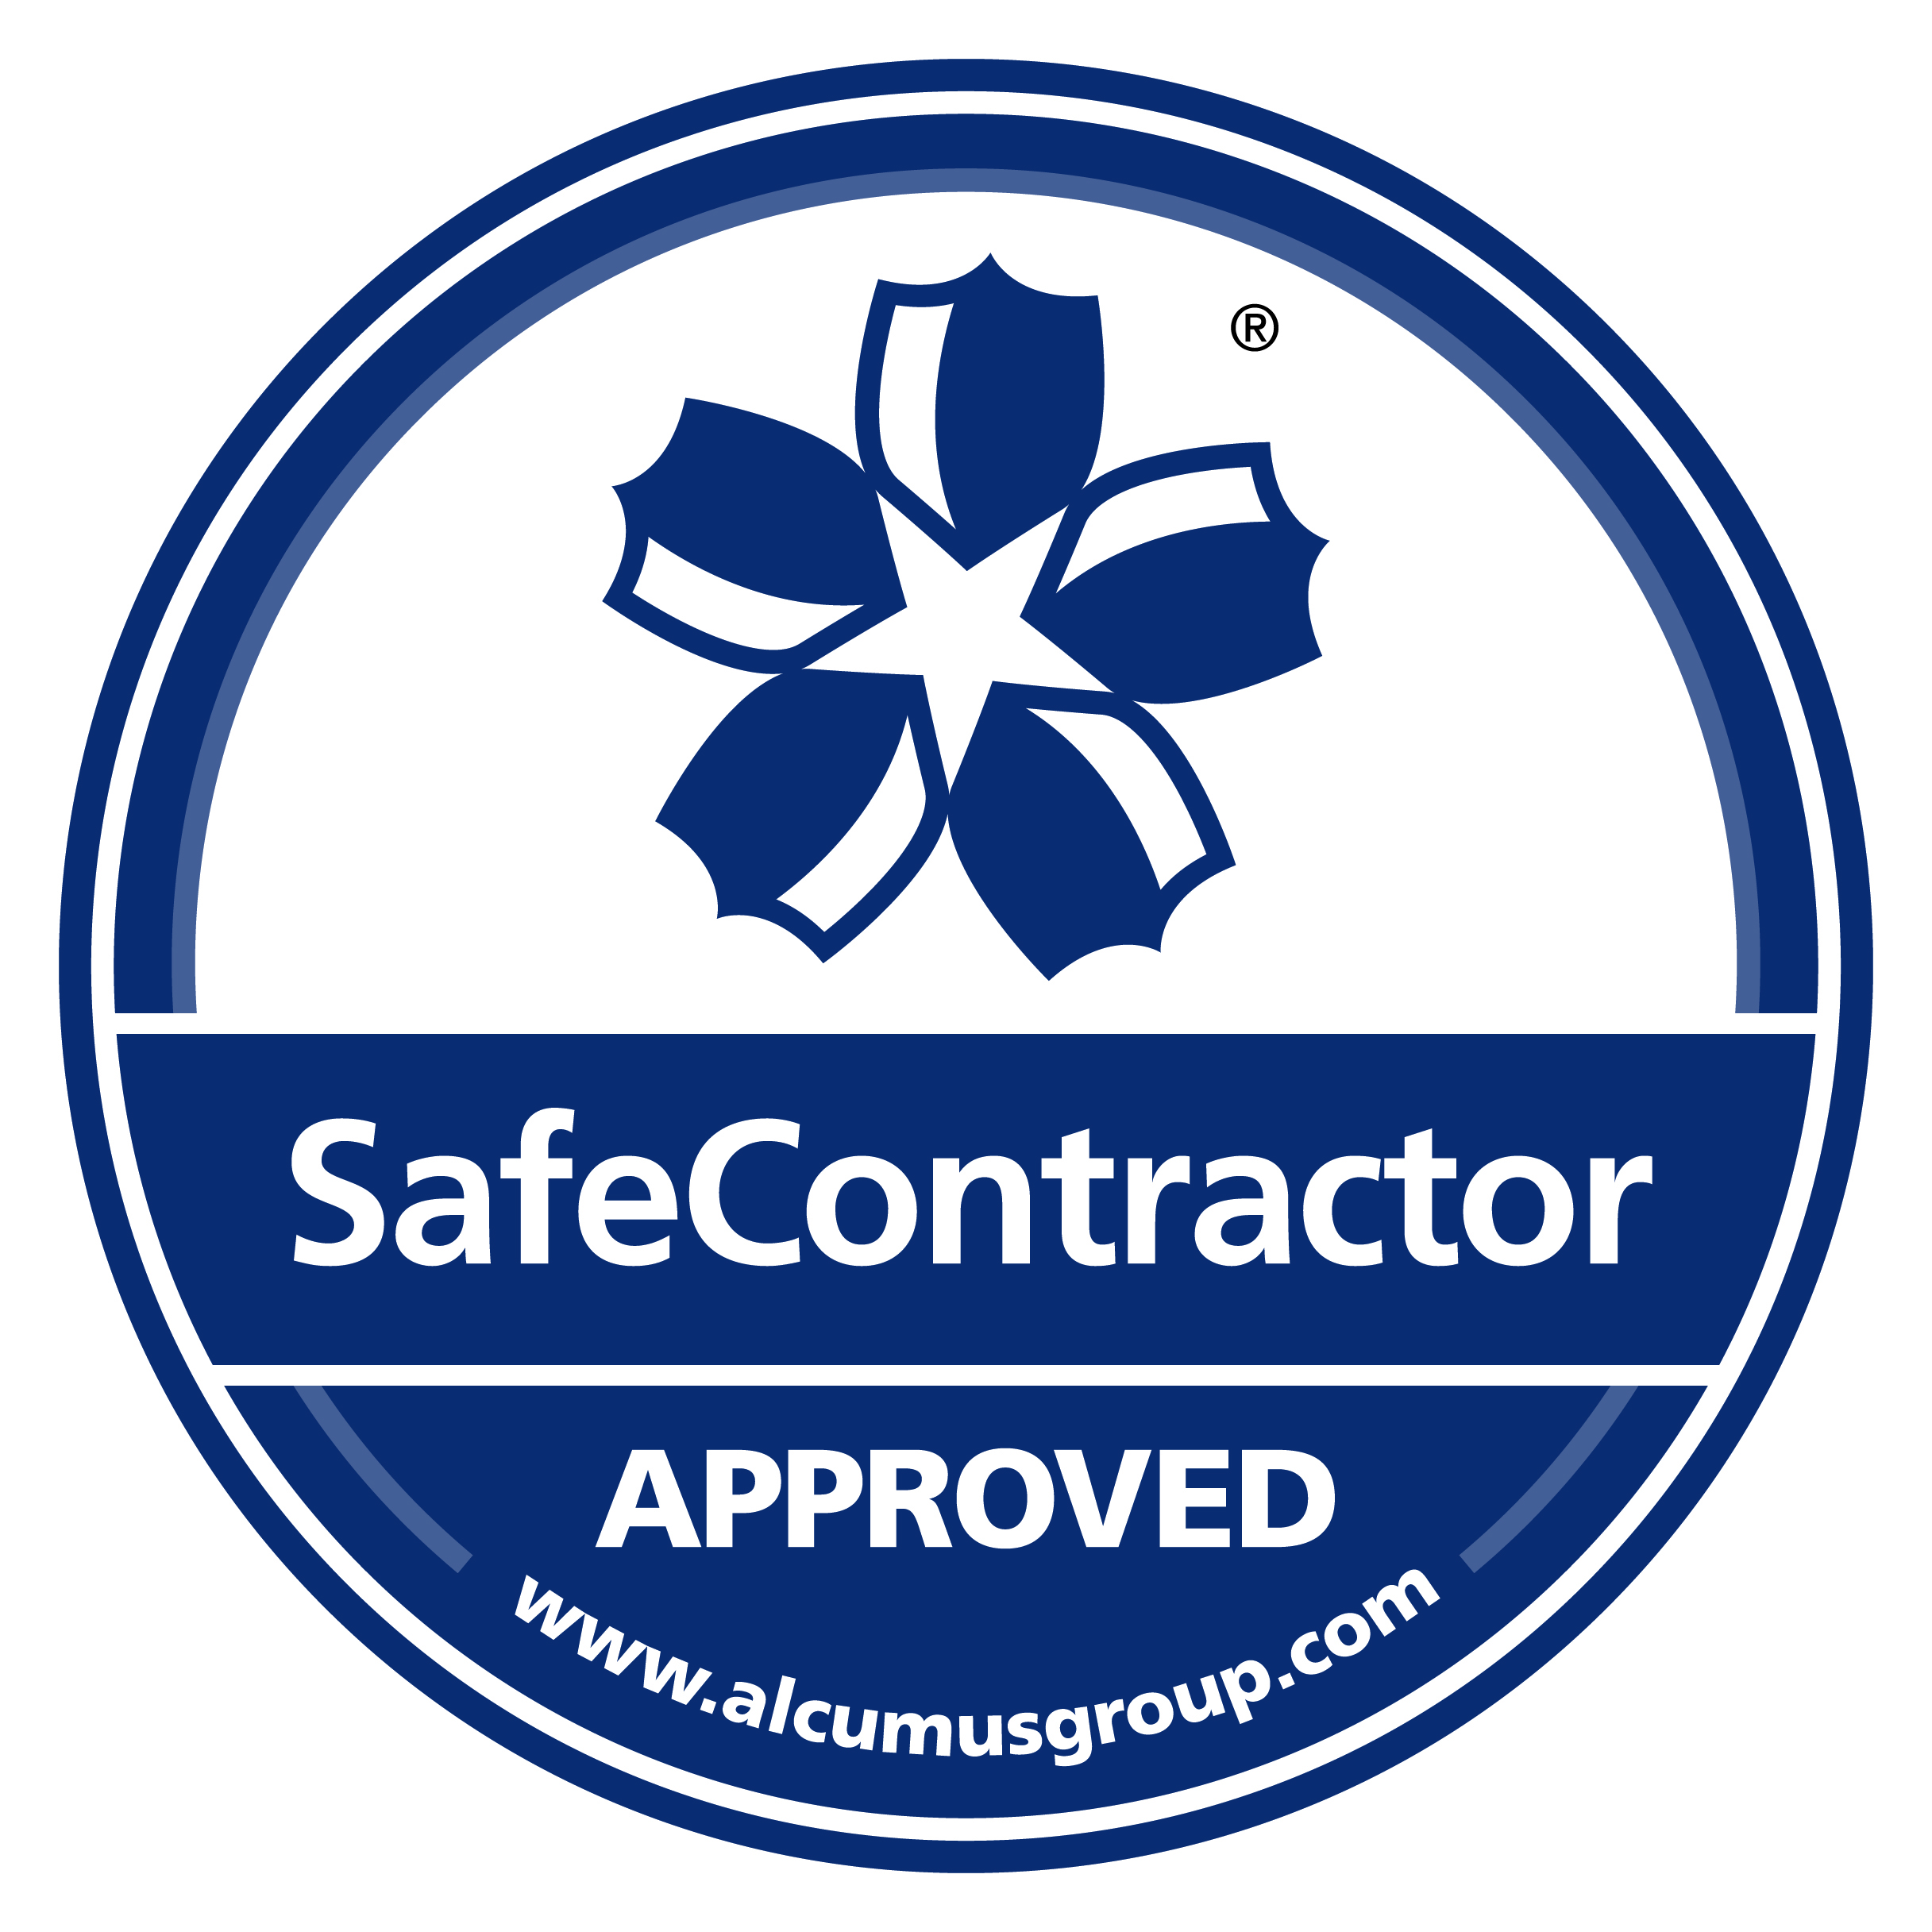 SafeContractor APPROVED : SHARP CLEANING SERVICES